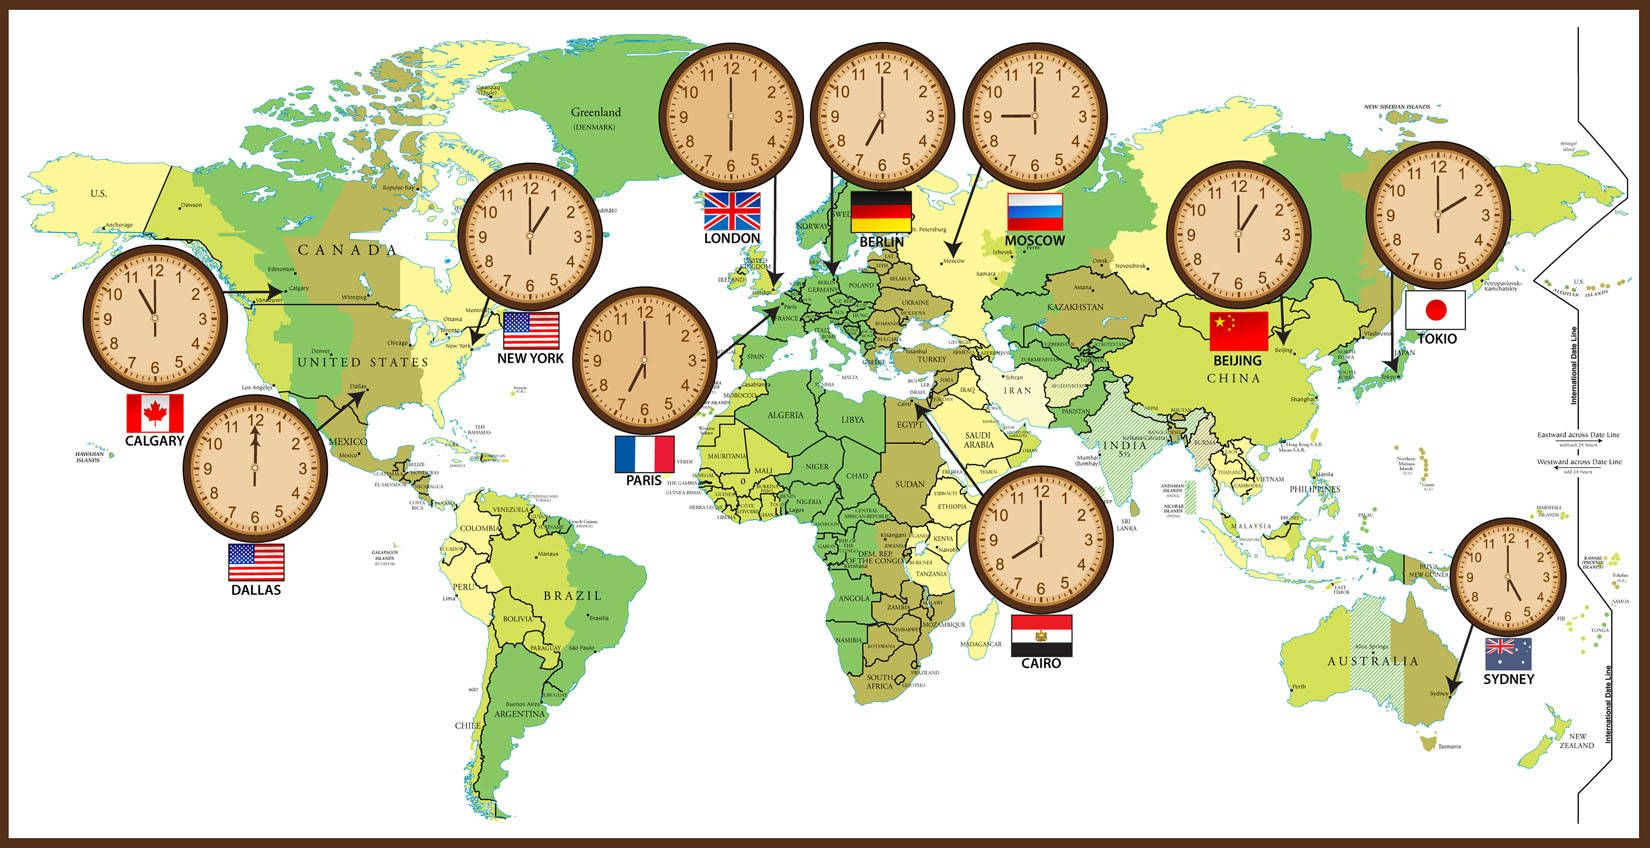 Regional settings updated with an extended list of supported time list of supported time zones httpprovidesupportblog20130322regional settings updated with an extended list of supported time zones gumiabroncs Images